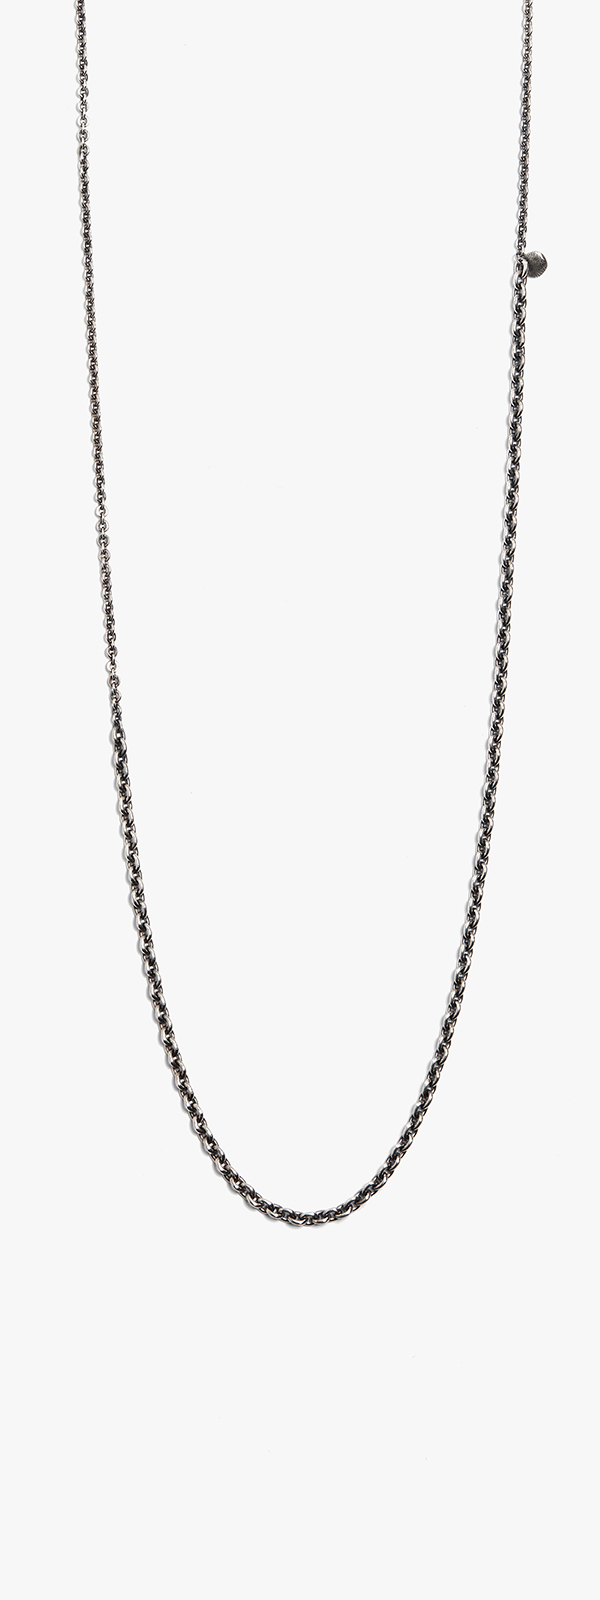 Image of Mixed Chain Necklace 058